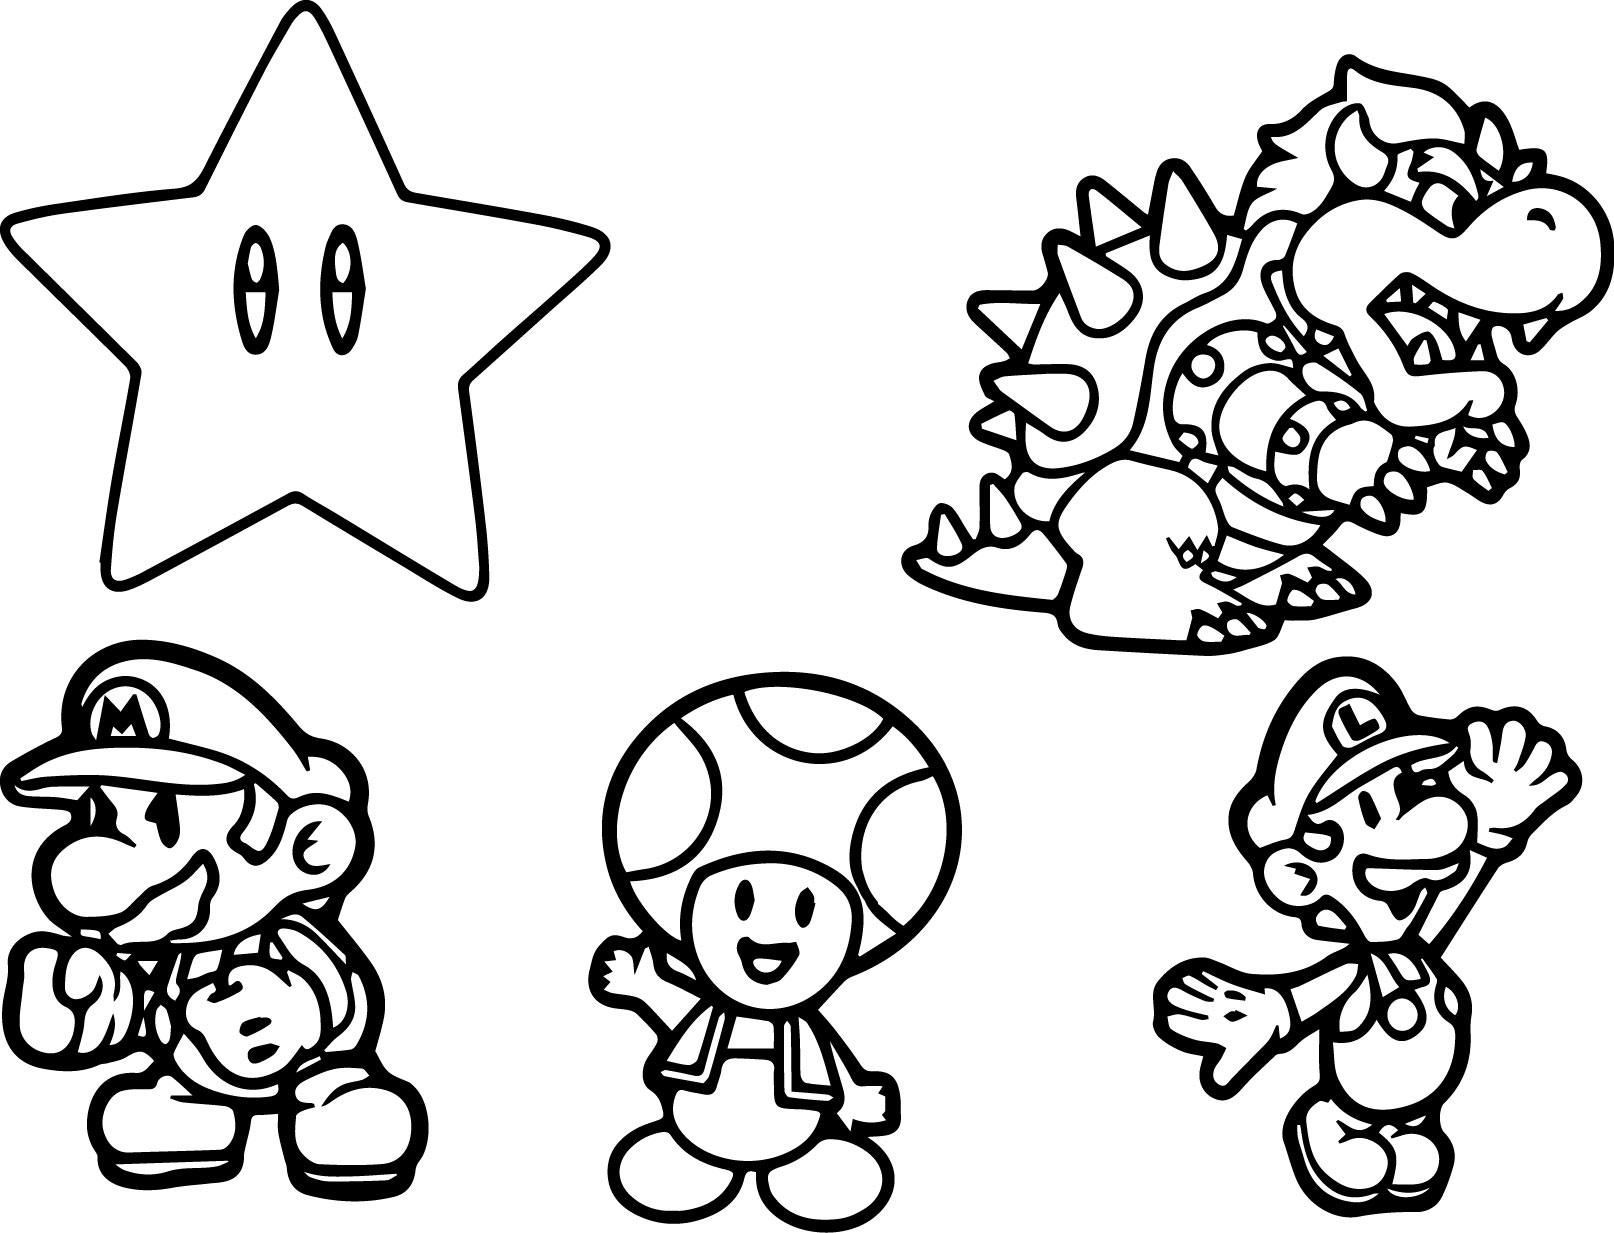 1614x1233 Super Mario Bros Characters Coloring Pages Coloring Home, Coloring